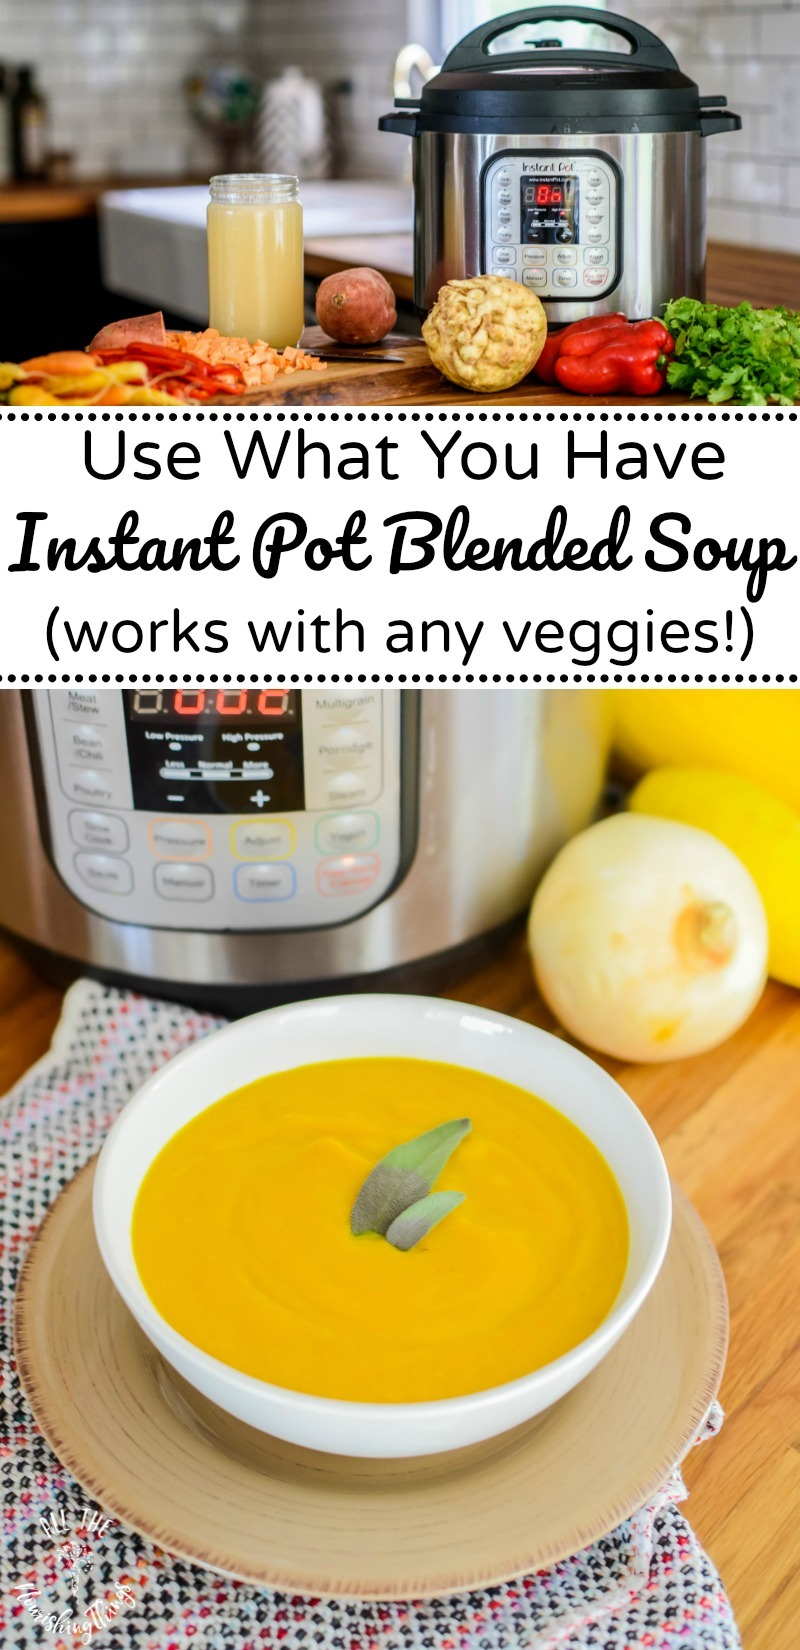 veggies with instant pot over image of blended soup